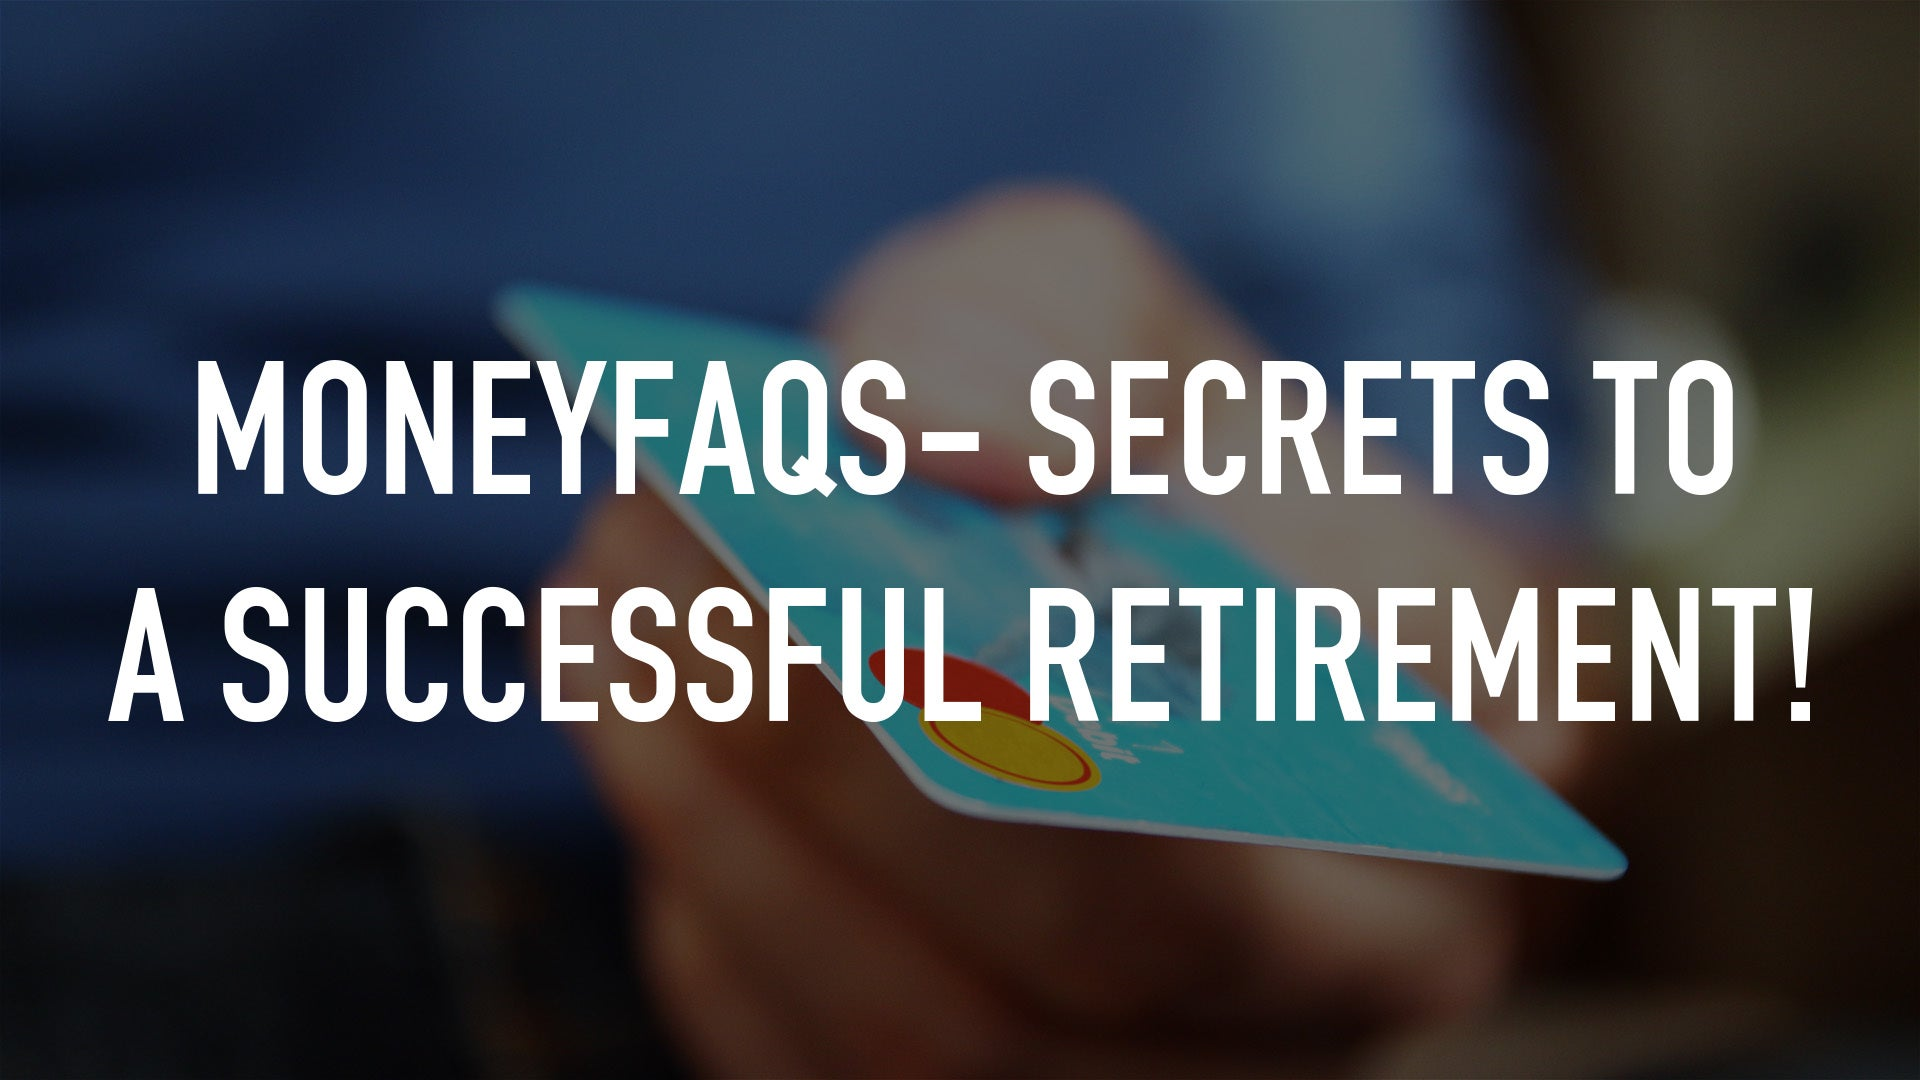 MoneyFAQs- Secrets to a Successful Retirement!